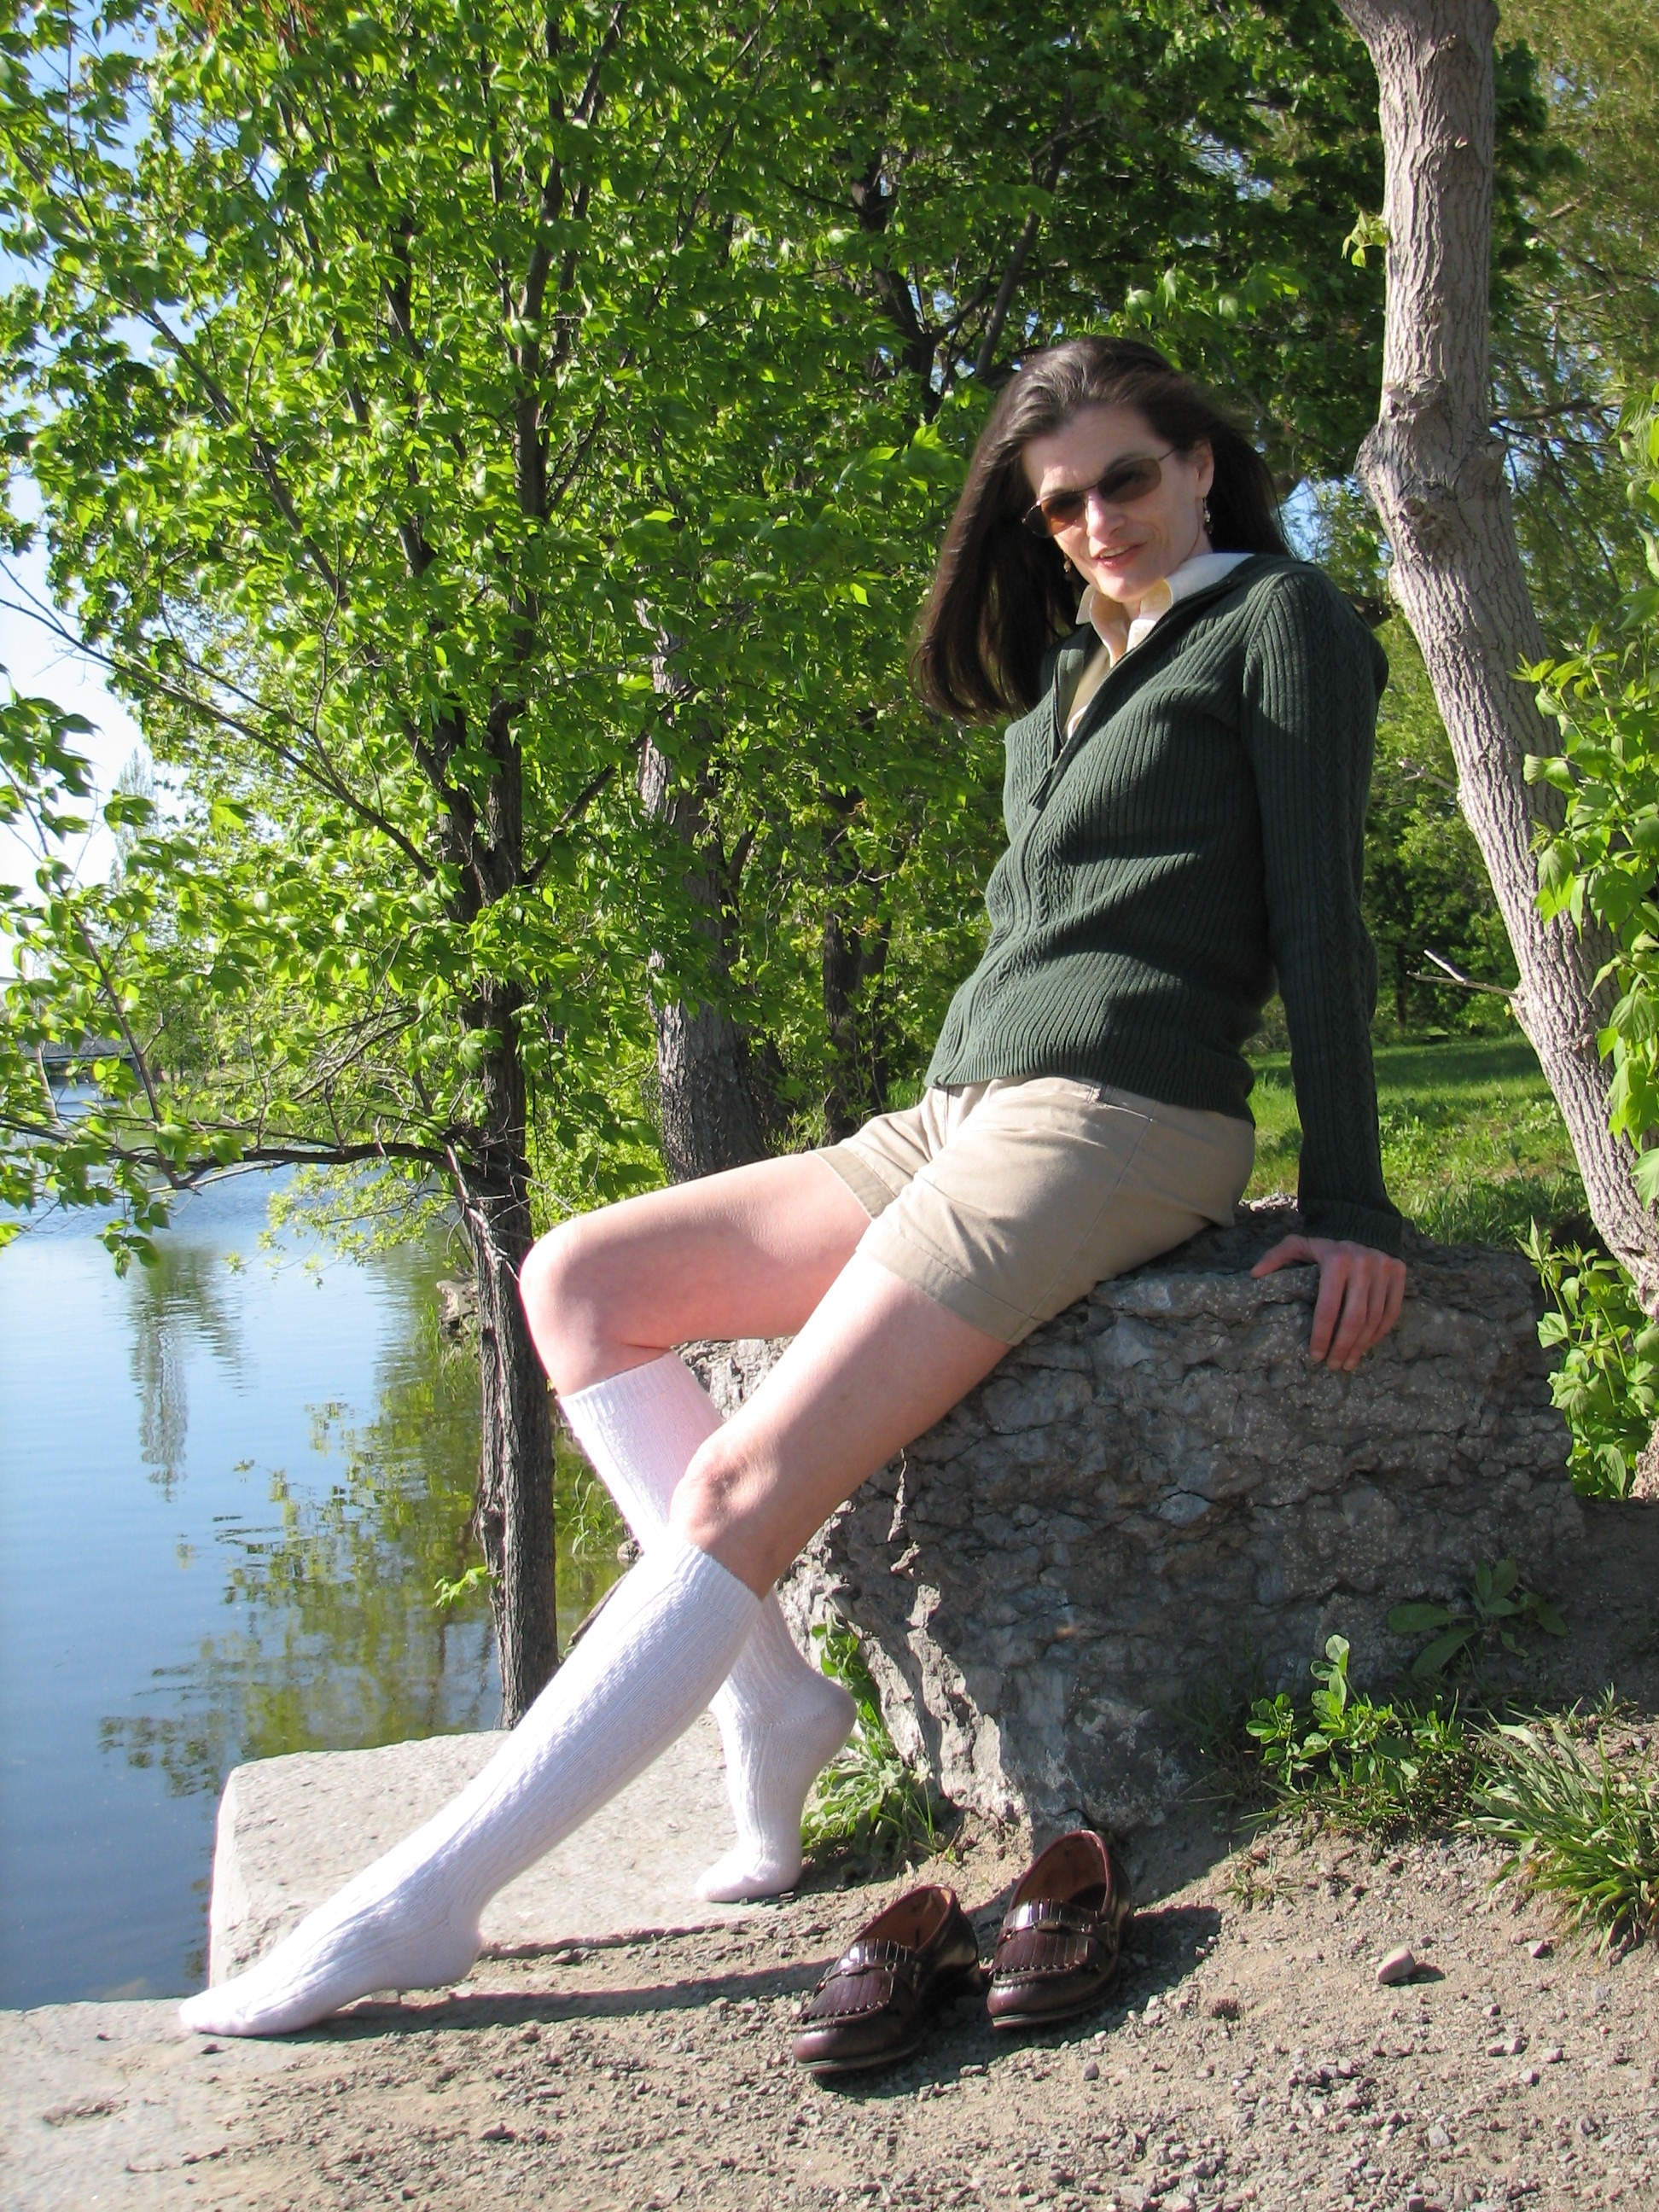 Cute teen in pantyhose 13 - 1 part 6